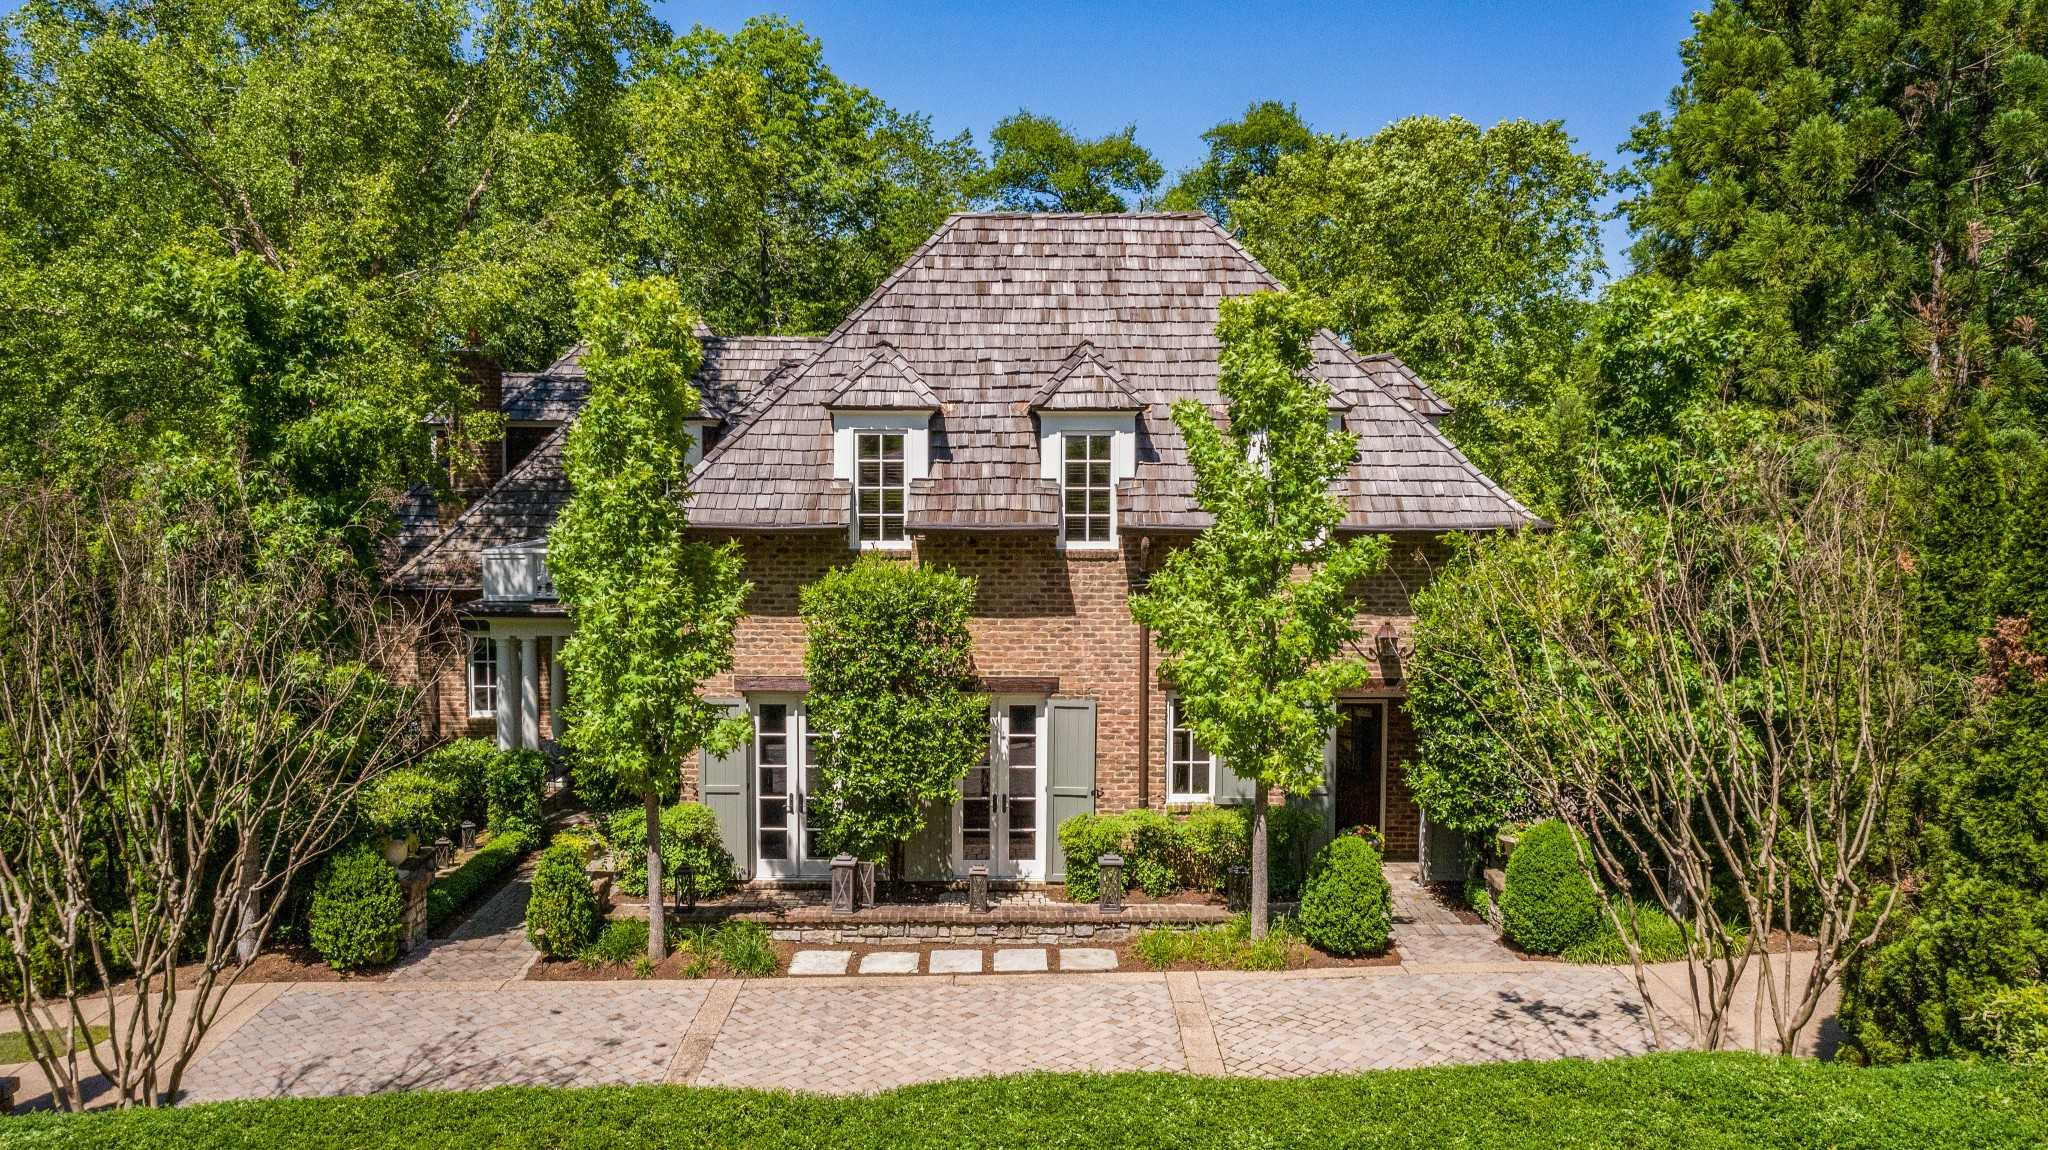 $2,850,000 - 4Br/6Ba -  for Sale in Belle Meade, Nashville